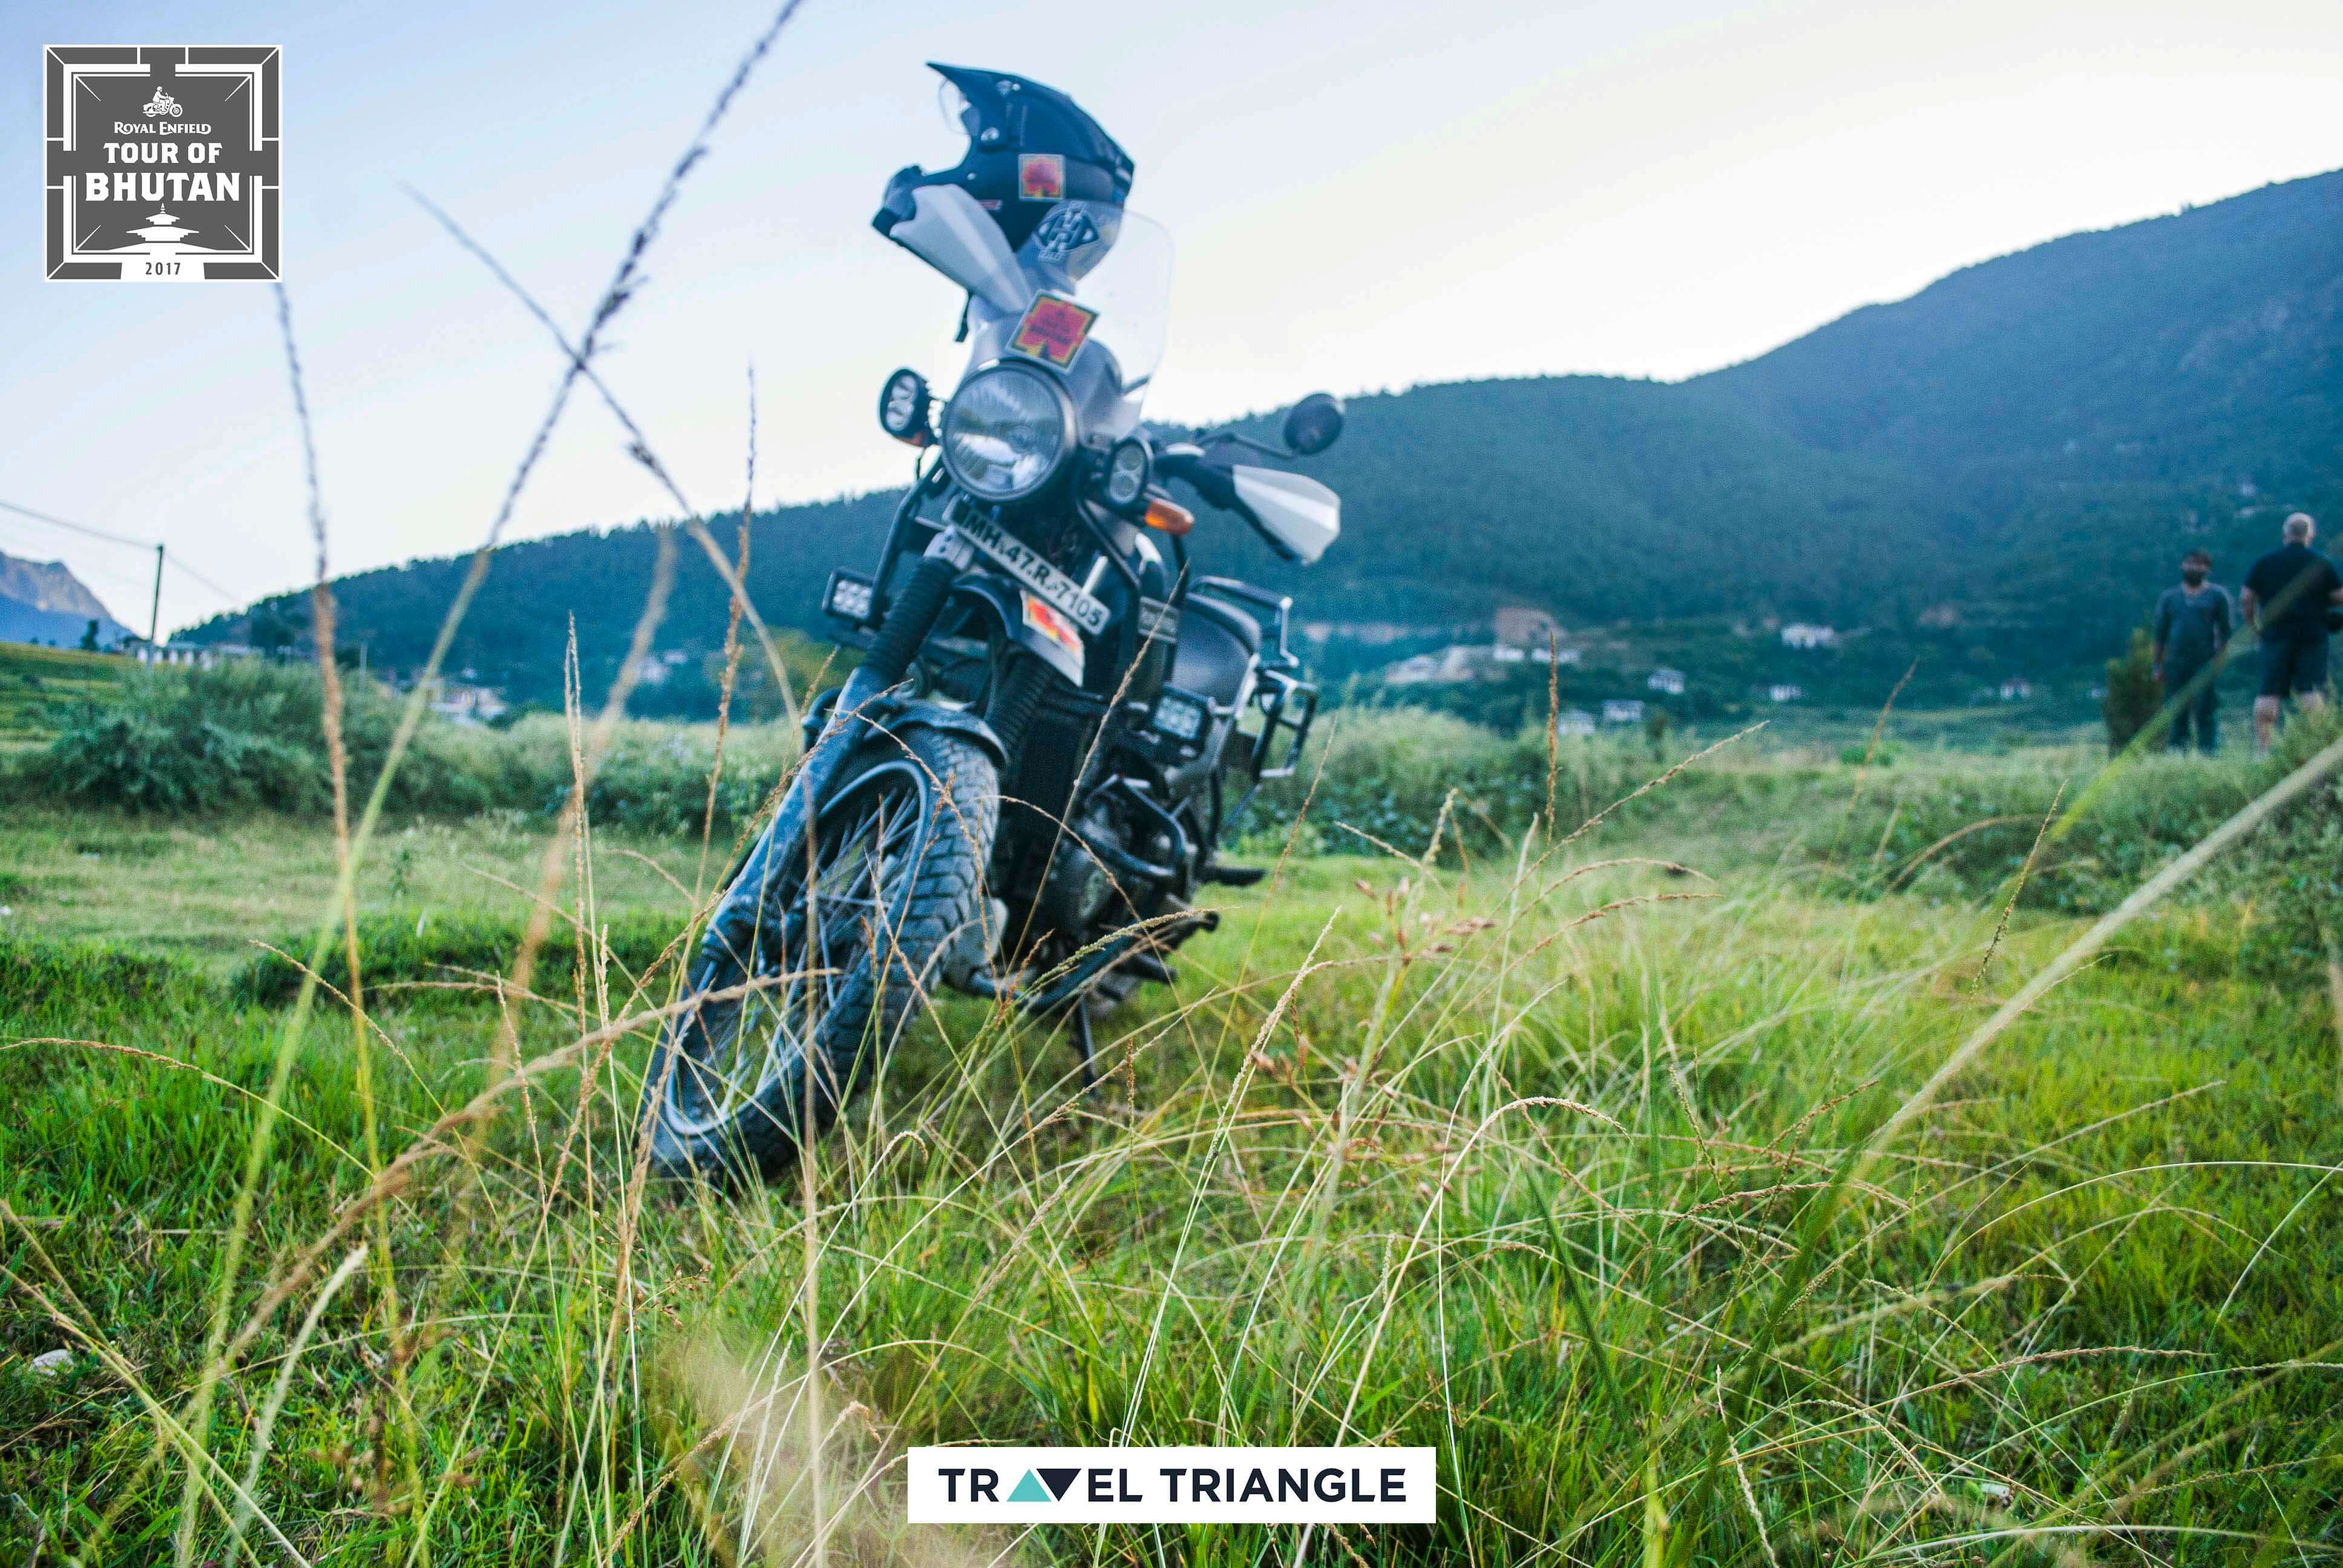 Thimphu to Punakha: the bike standing on a grassy slope